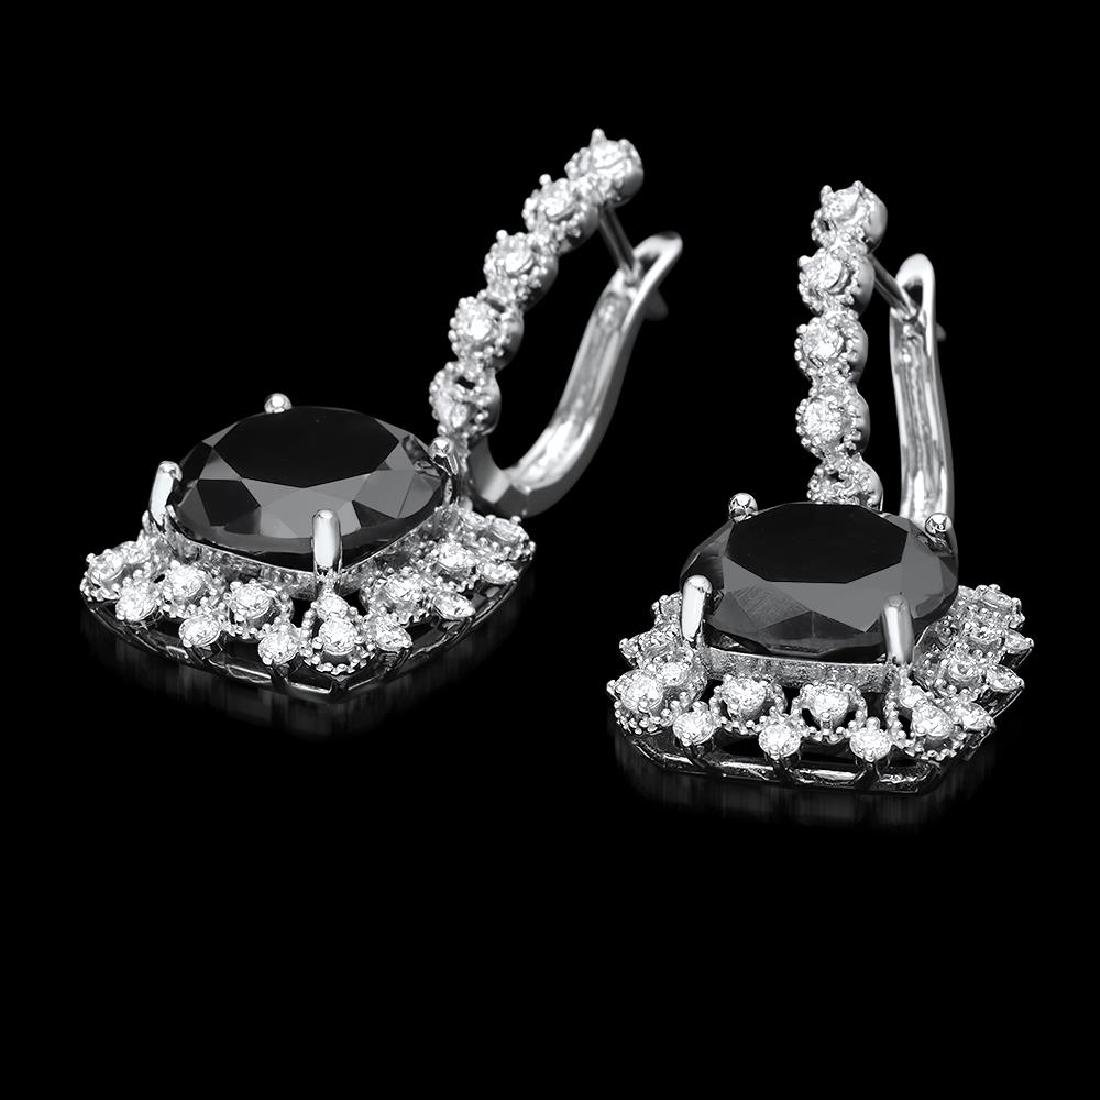 14k White Gold 13.88ct Diamond Earrings - 2